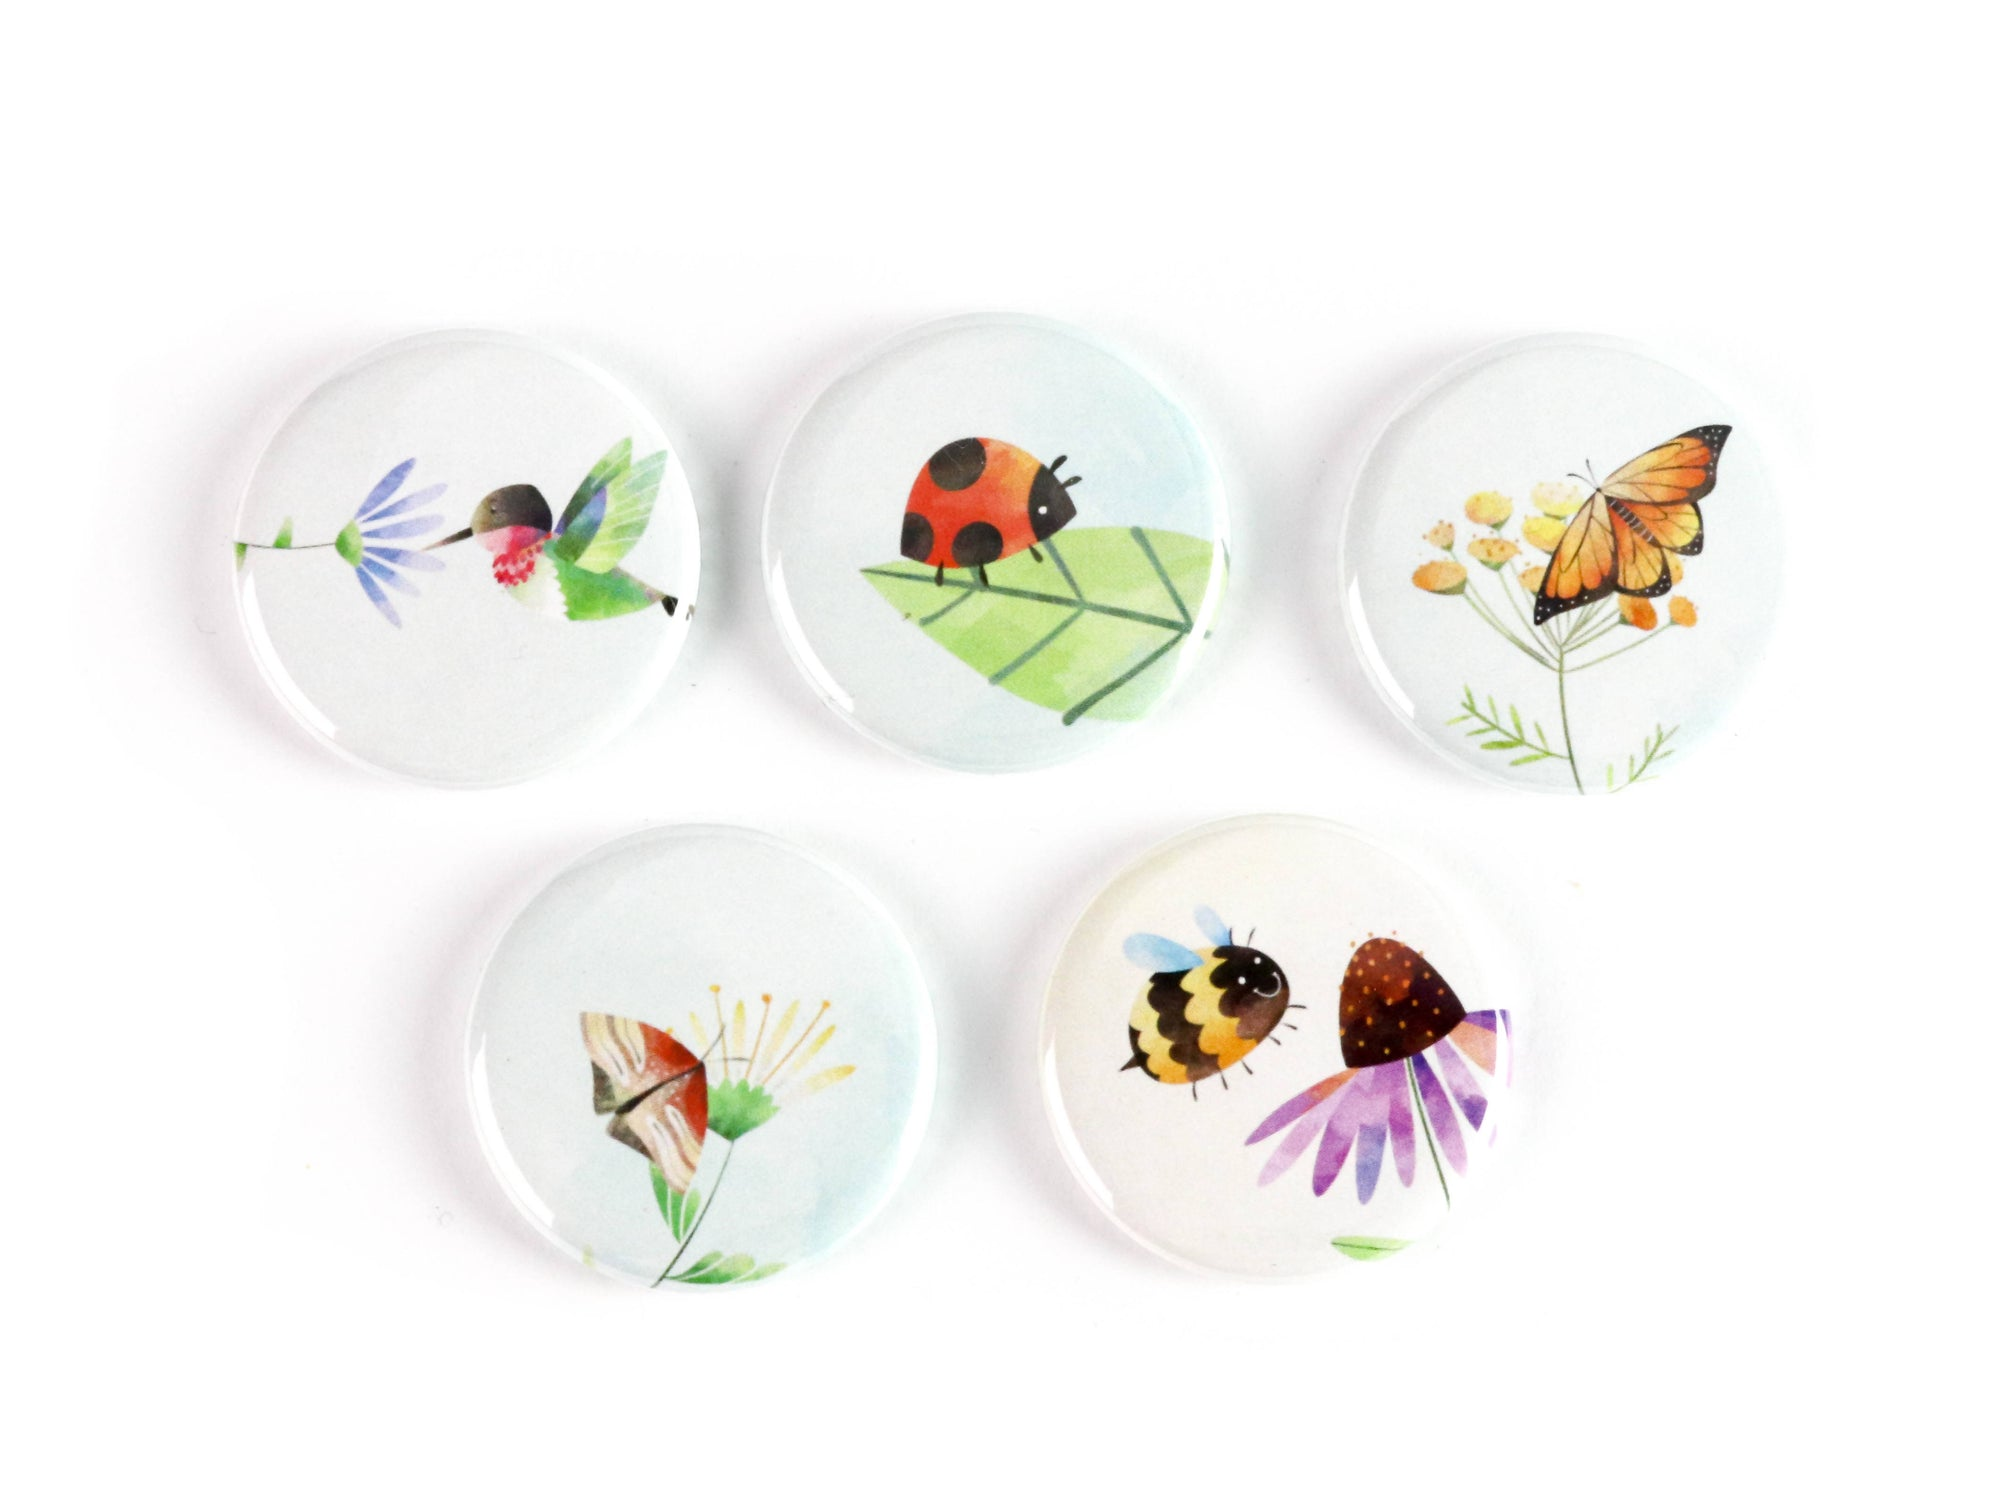 Pollinators, Garden Friends Ceramic Magnets or Pinback Buttons: Supports The Ottawa Food Bank's Community Harvest Program